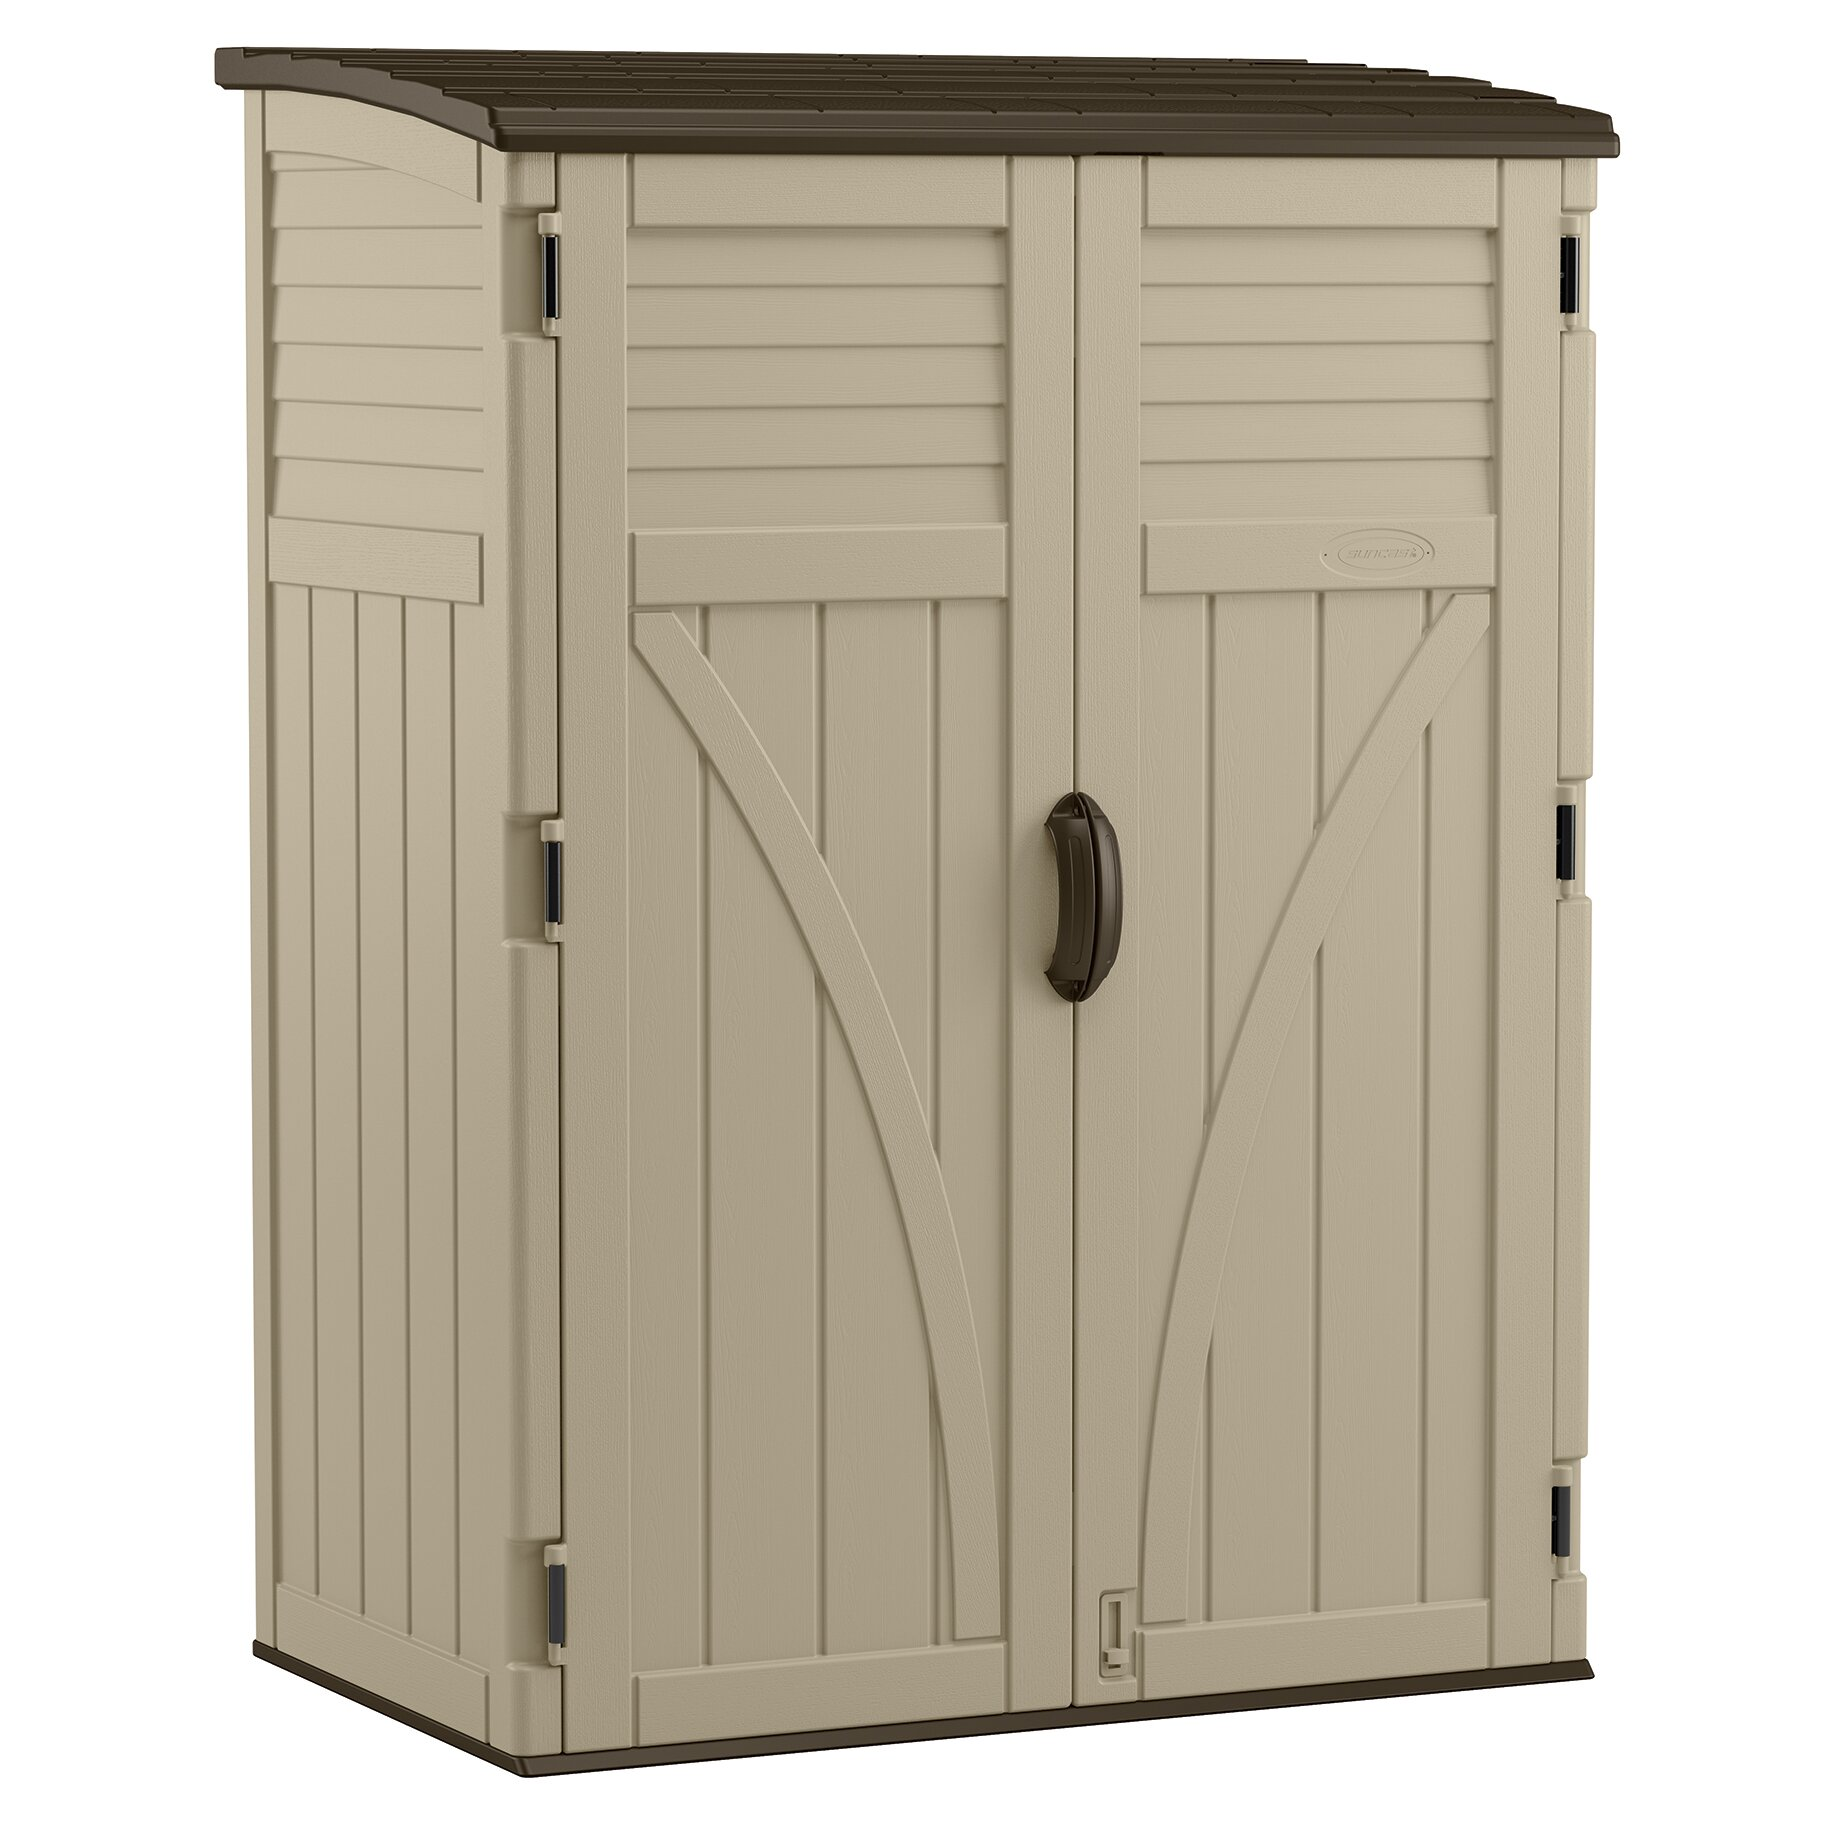 Suncast 4 4 ft w x 2 7 ft d plastic storage shed for Garden shed 2 x 2